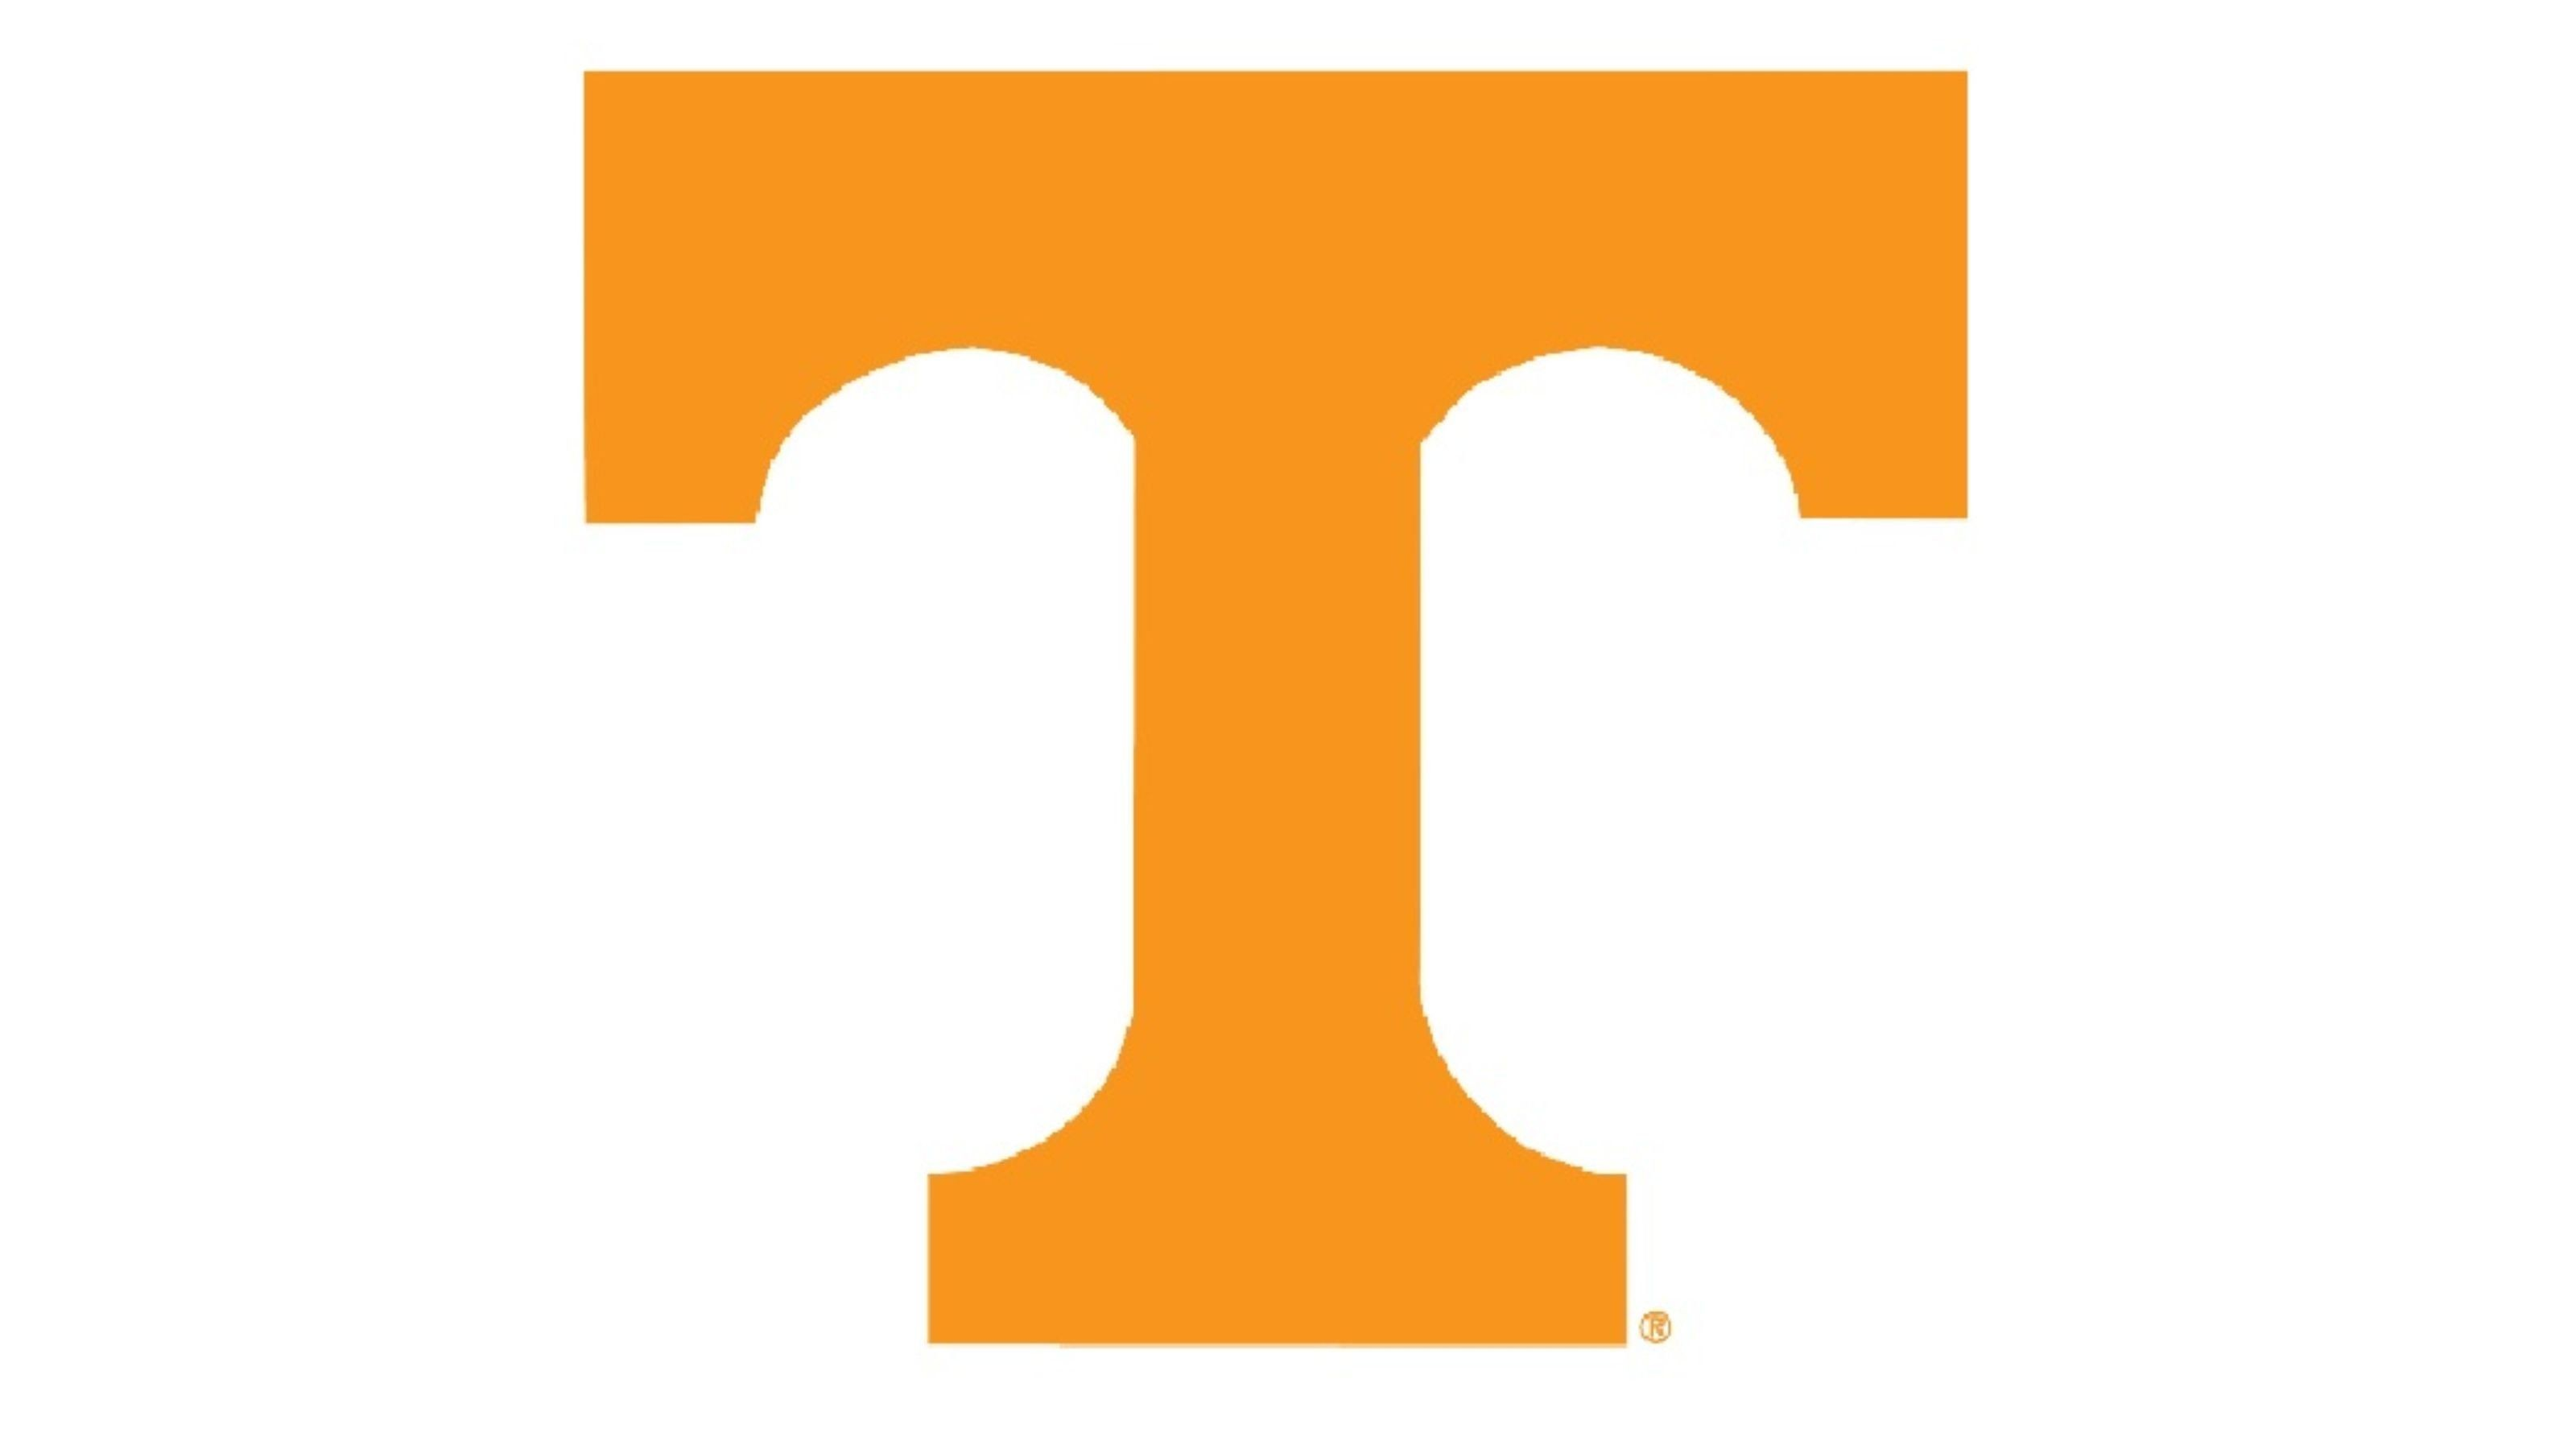 Free Tennessee Football Cliparts, Download Free Clip Art, Free Clip Art on  Clipart Library